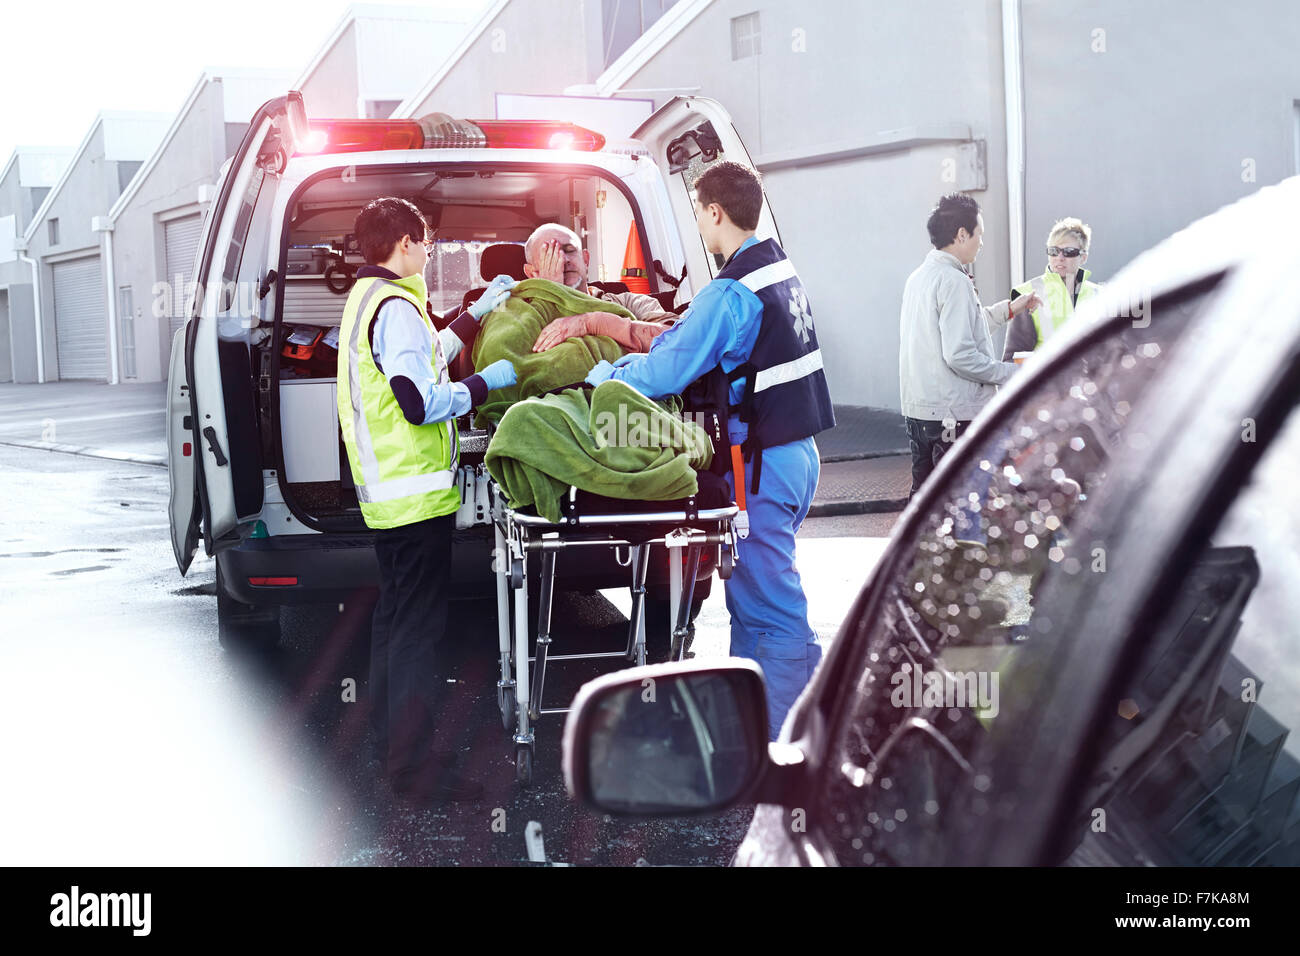 Rescue workers tending to car accident victim on stretcher at back of ambulance - Stock Image